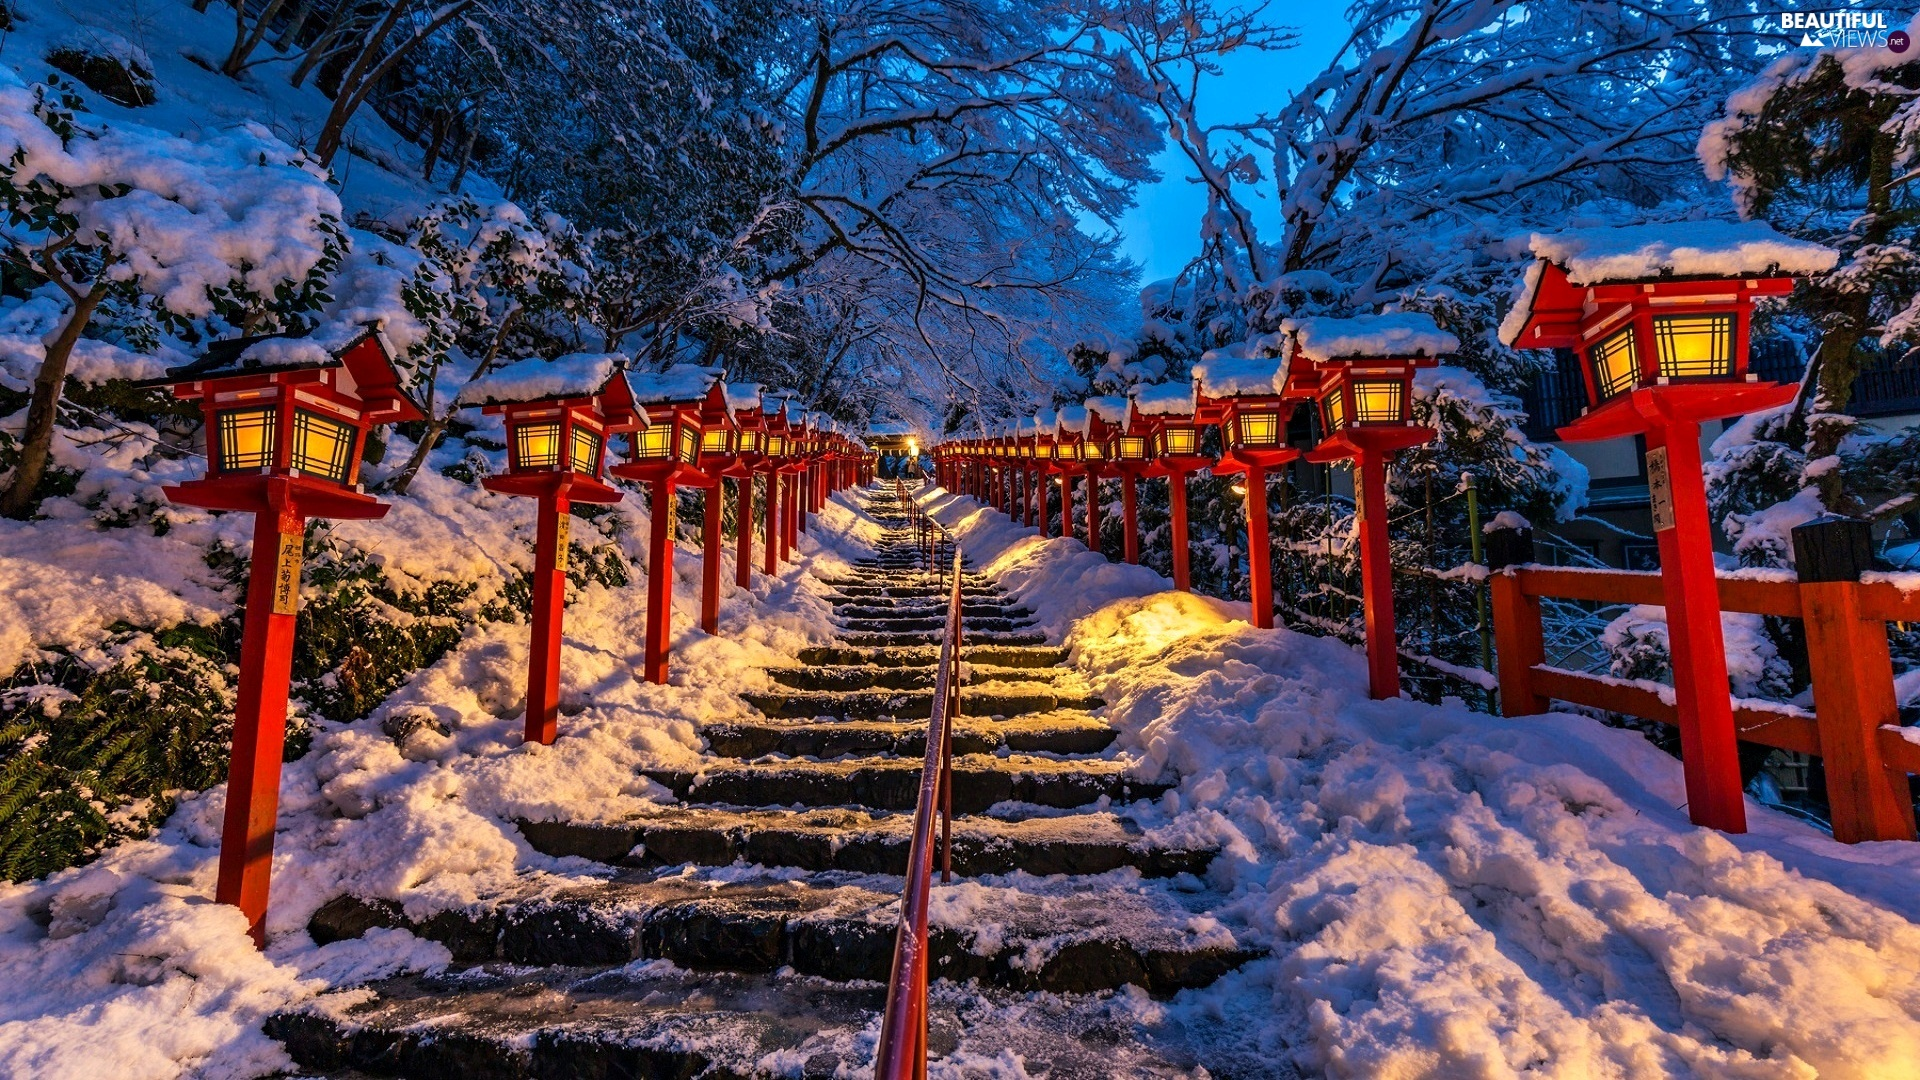 lighting, icy, snow, winter, Lamps, Stairs